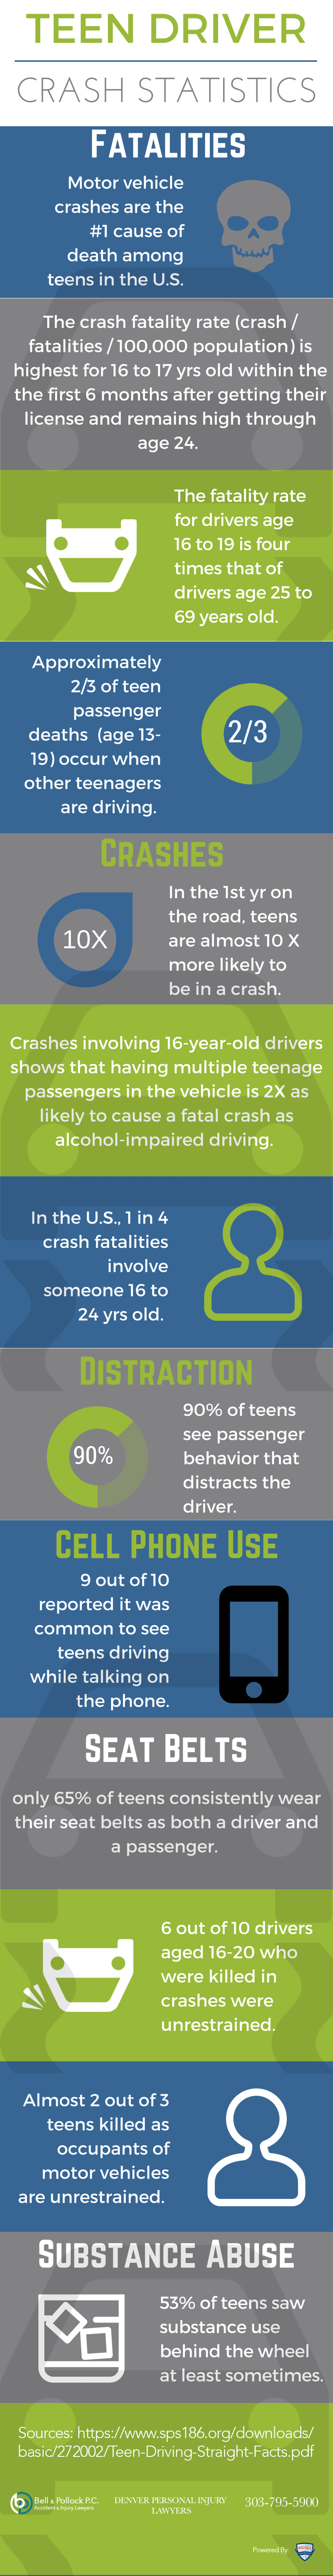 Auto Crash Risks Linked to Teen Motorists [Infographic]